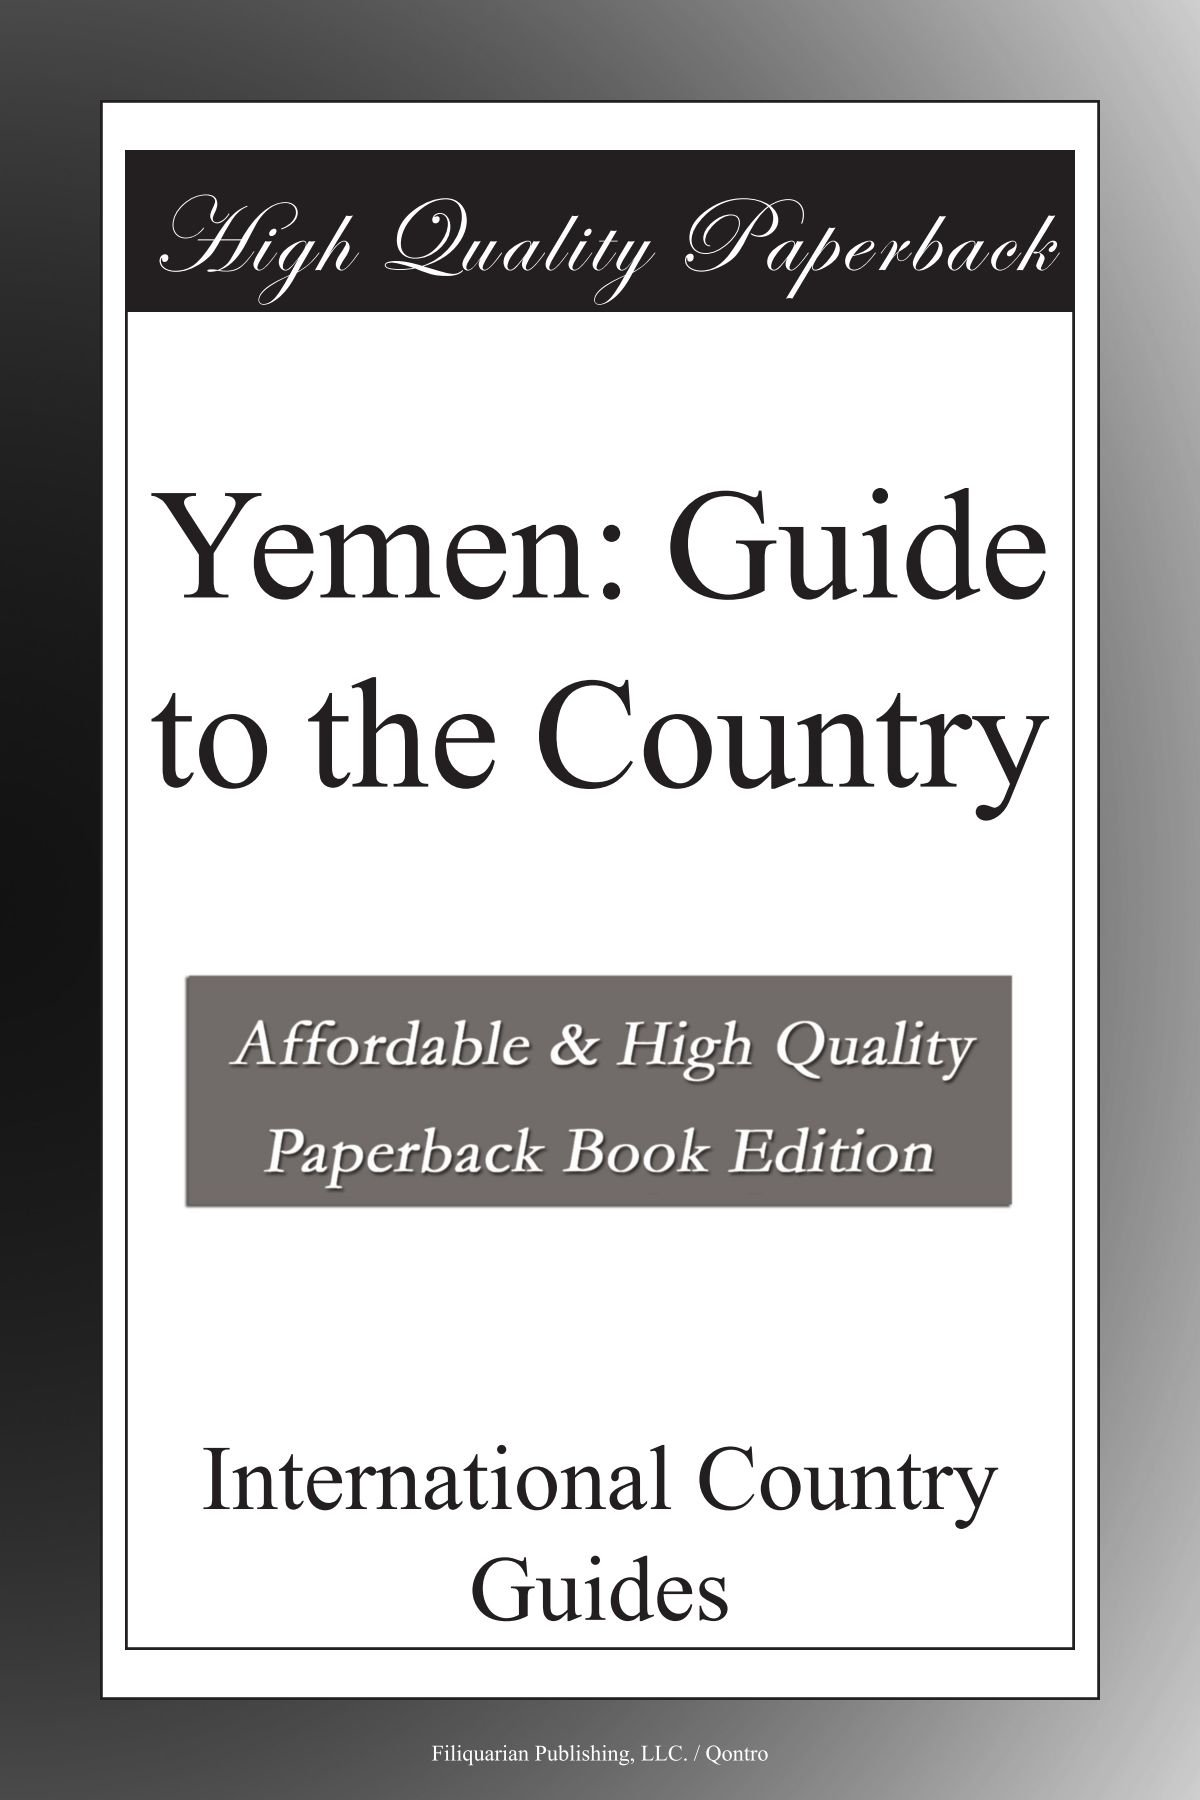 Yemen: Guide to the Country